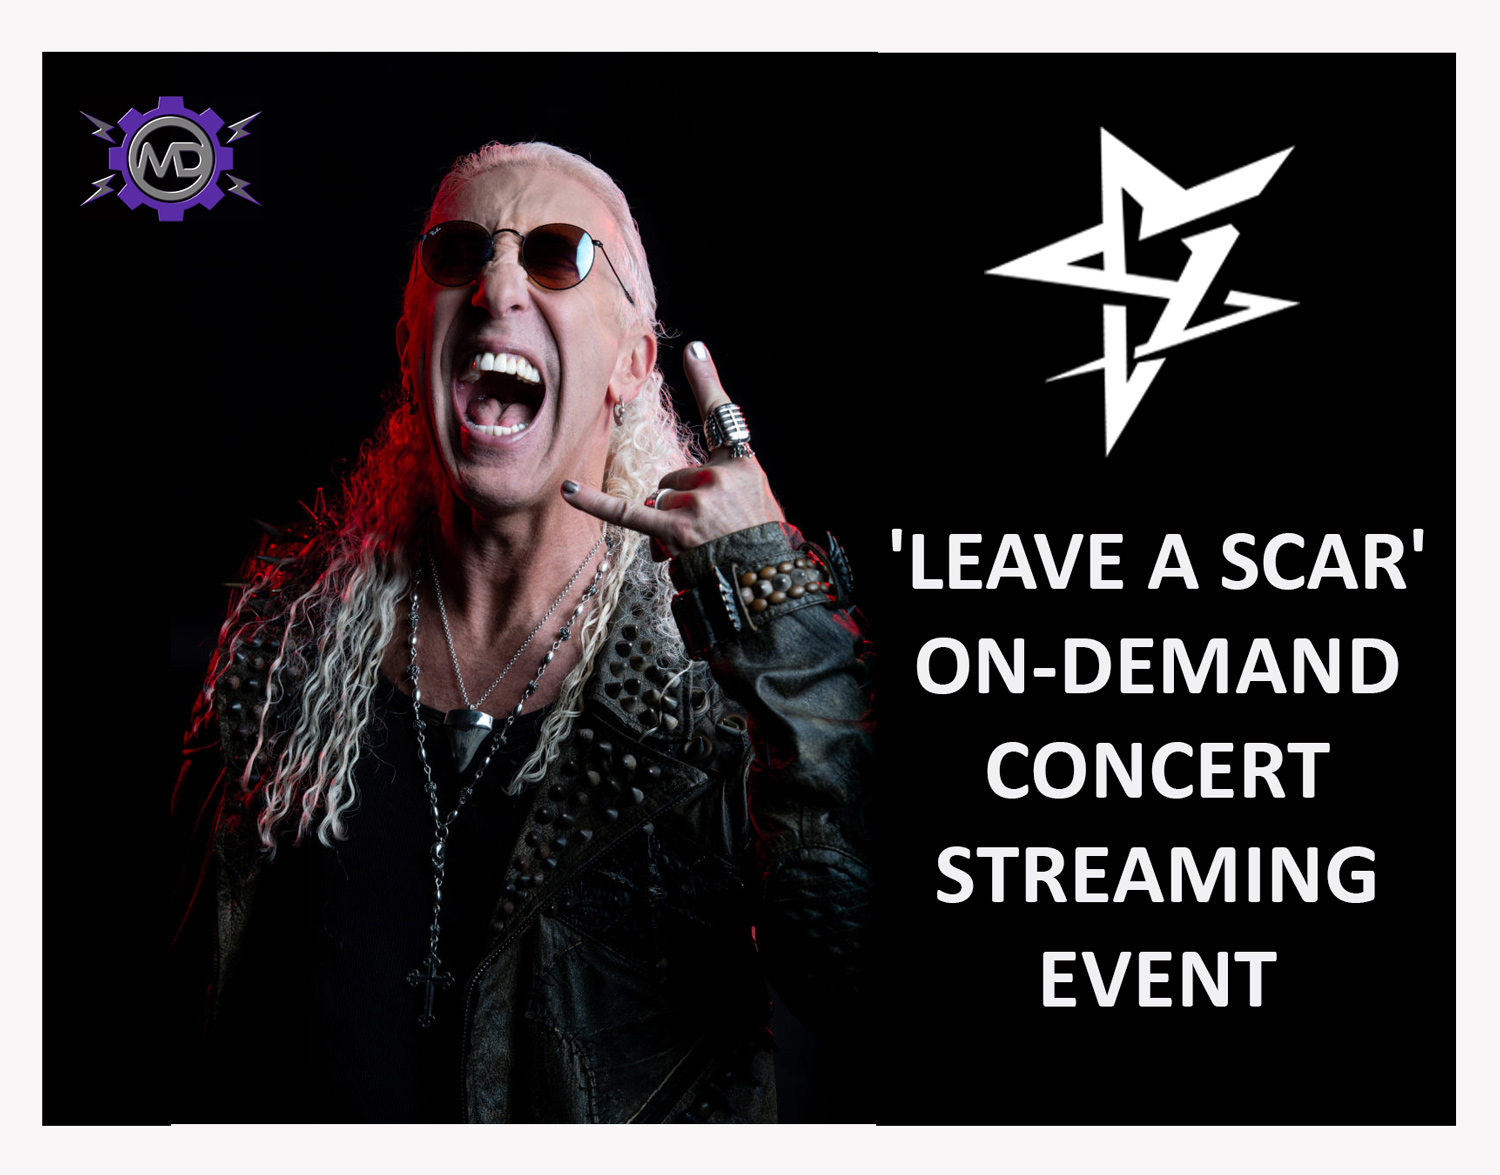 DEE SNIDER 'Leave A Scar' On-Demand Concert Streaming Event from New York